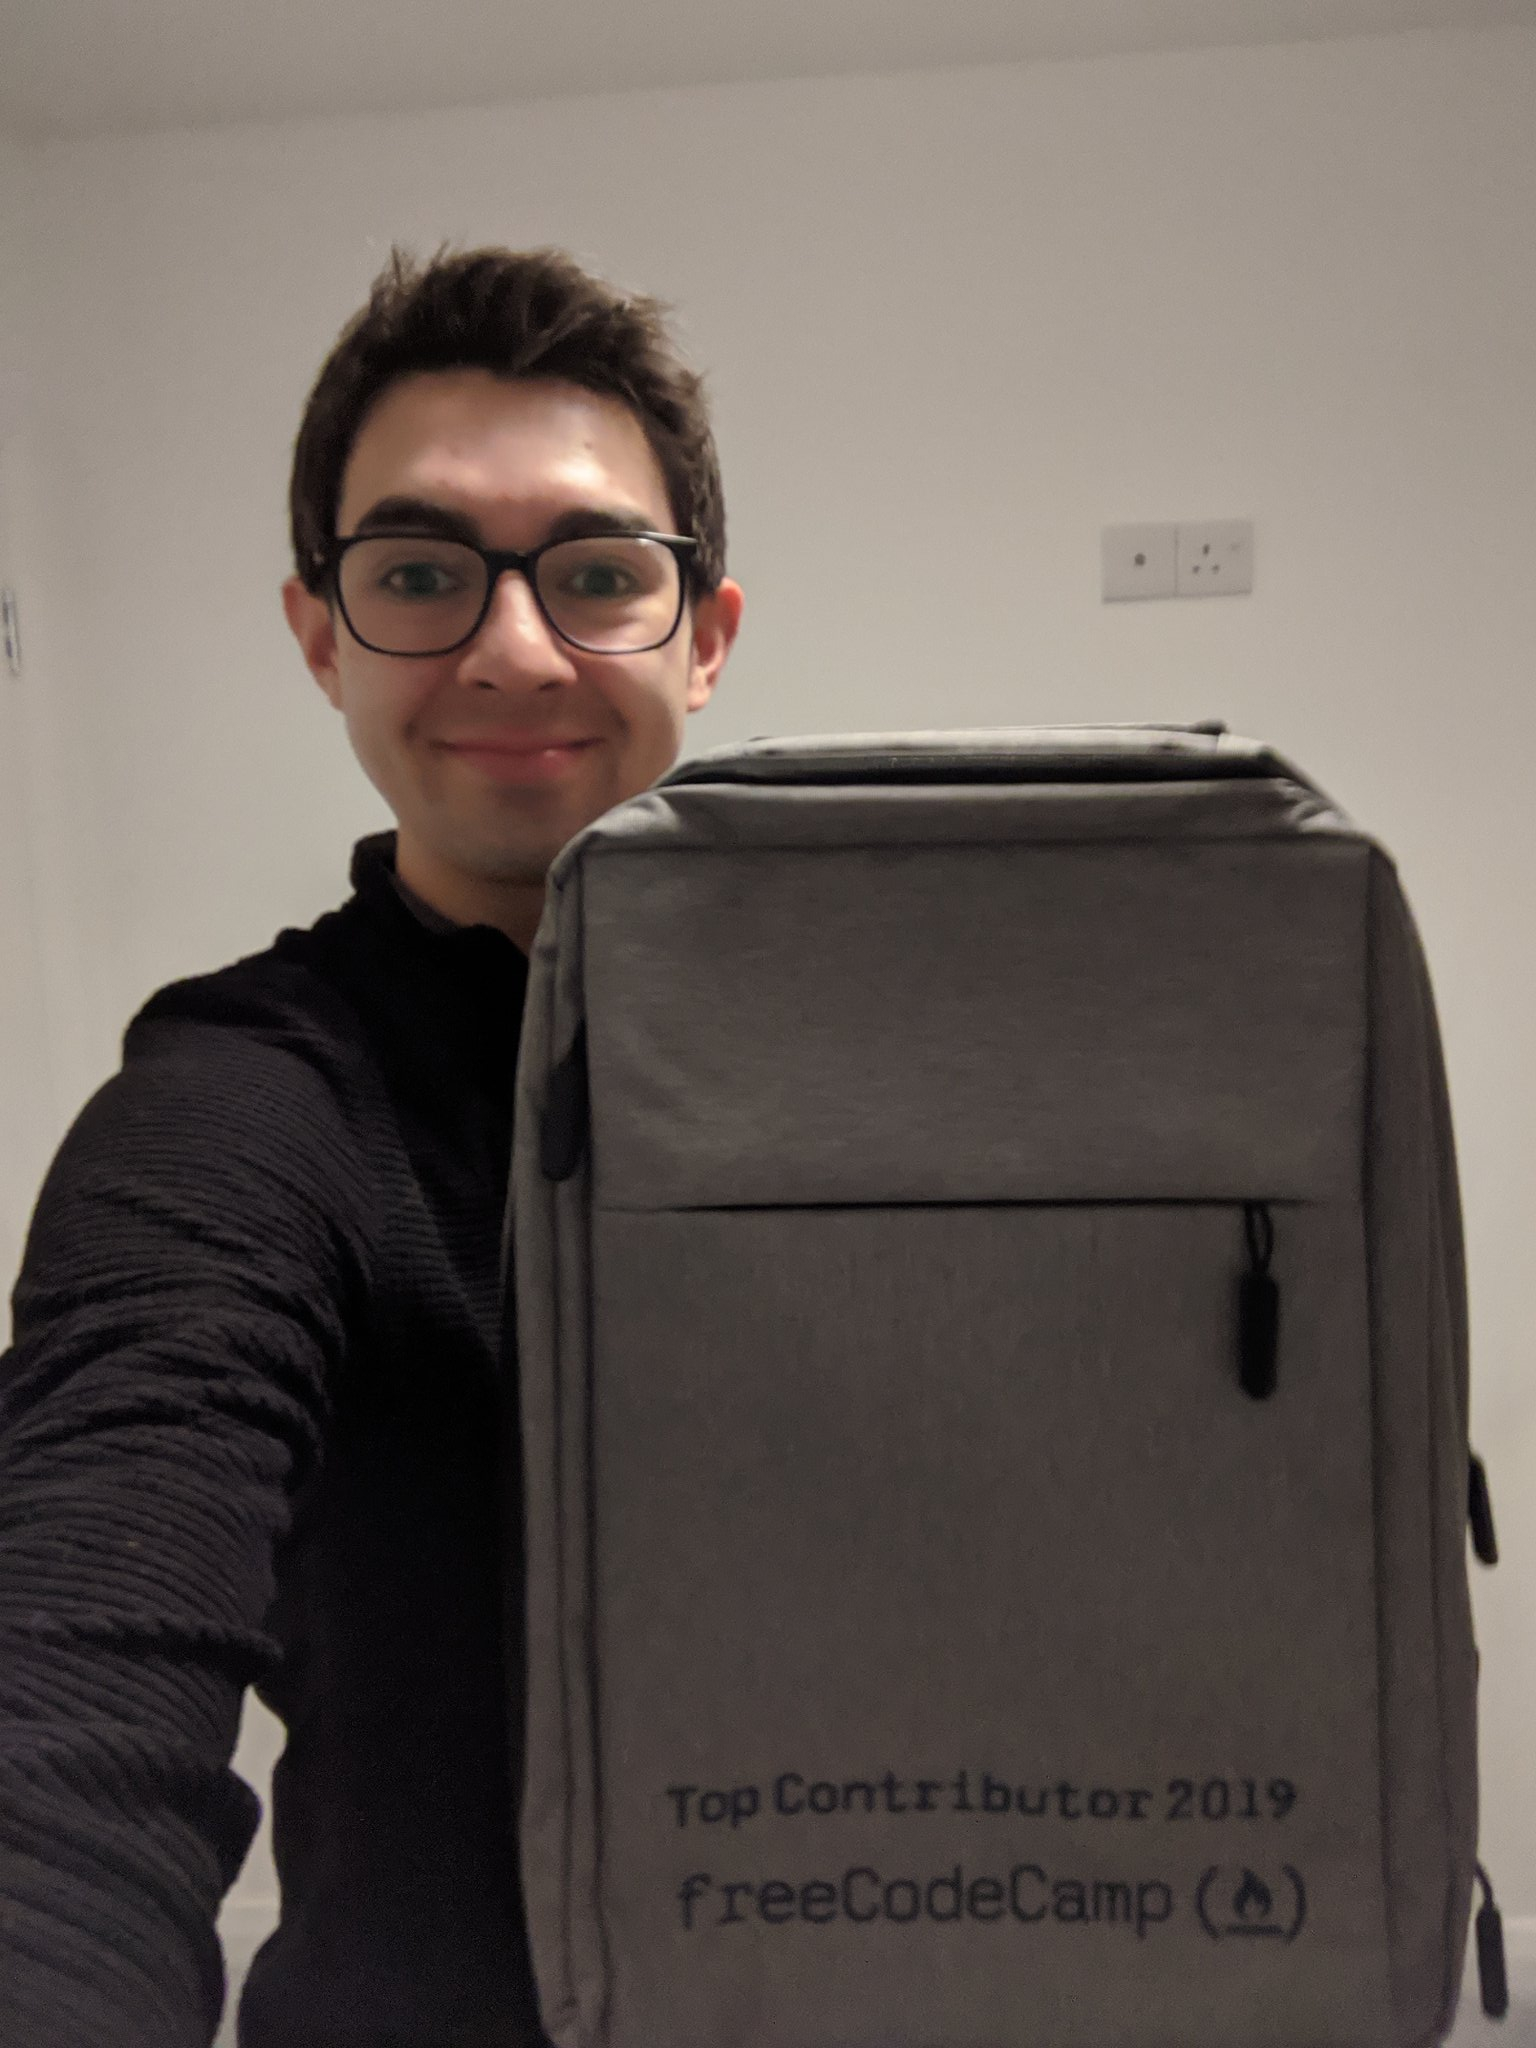 Here's me with my fancy Top Contributors backpack. Woohoo!